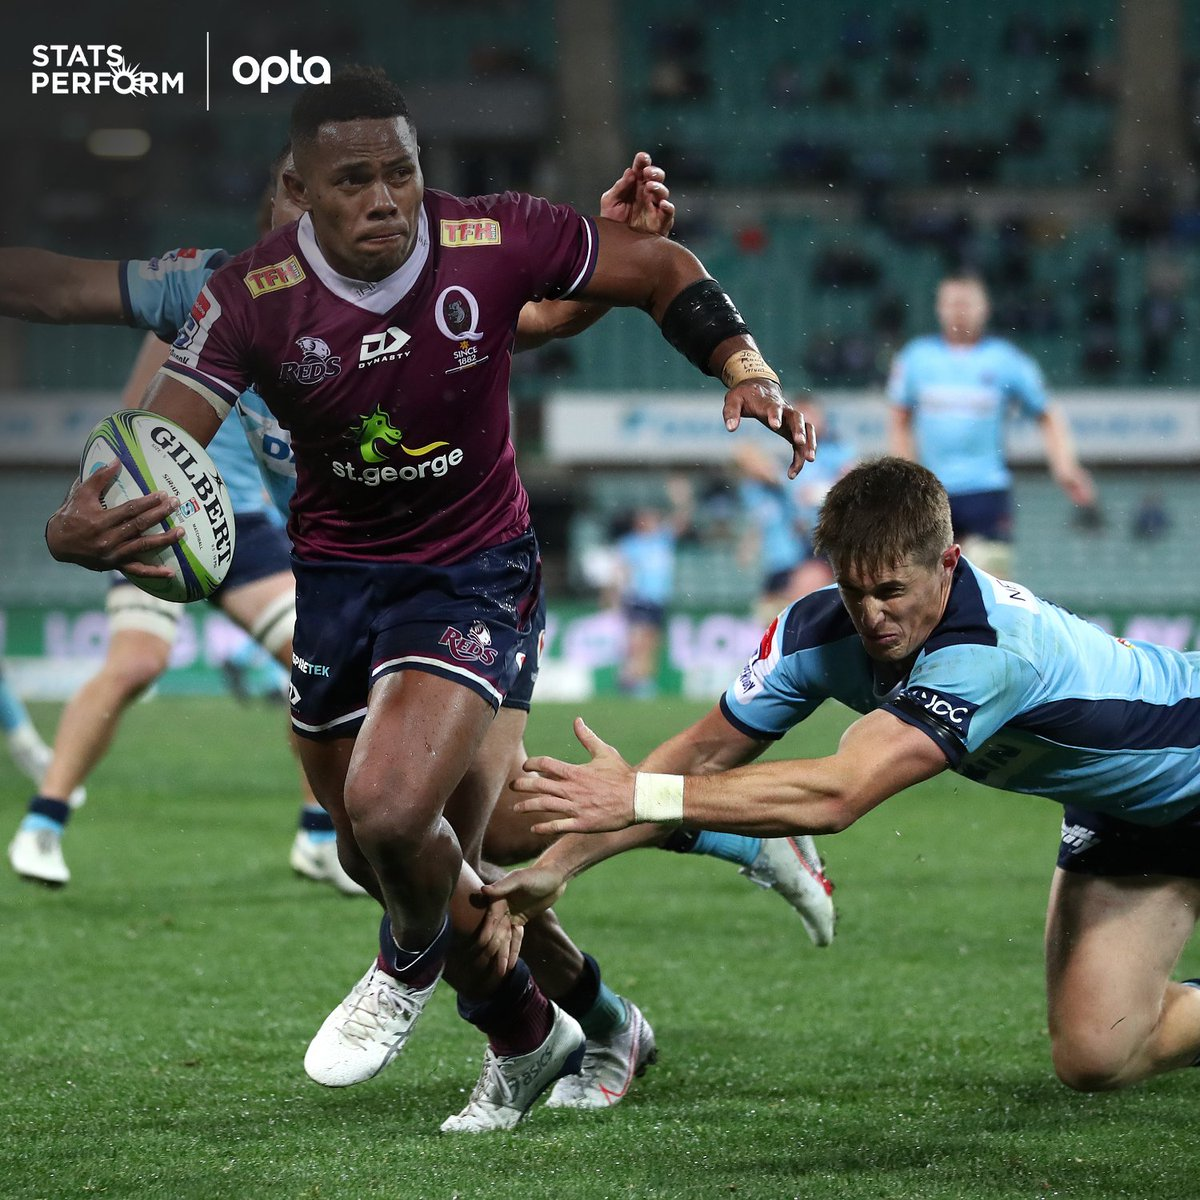 1 - @Reds_Rugby's Filipo Daugunu scored more tries (6), made more carries (117), gained more metres (771), beat more defenders (36), and made more offloads (13) than any other player in #SuperRugbyAU. Highlights. https://t.co/uTrhEcMRag